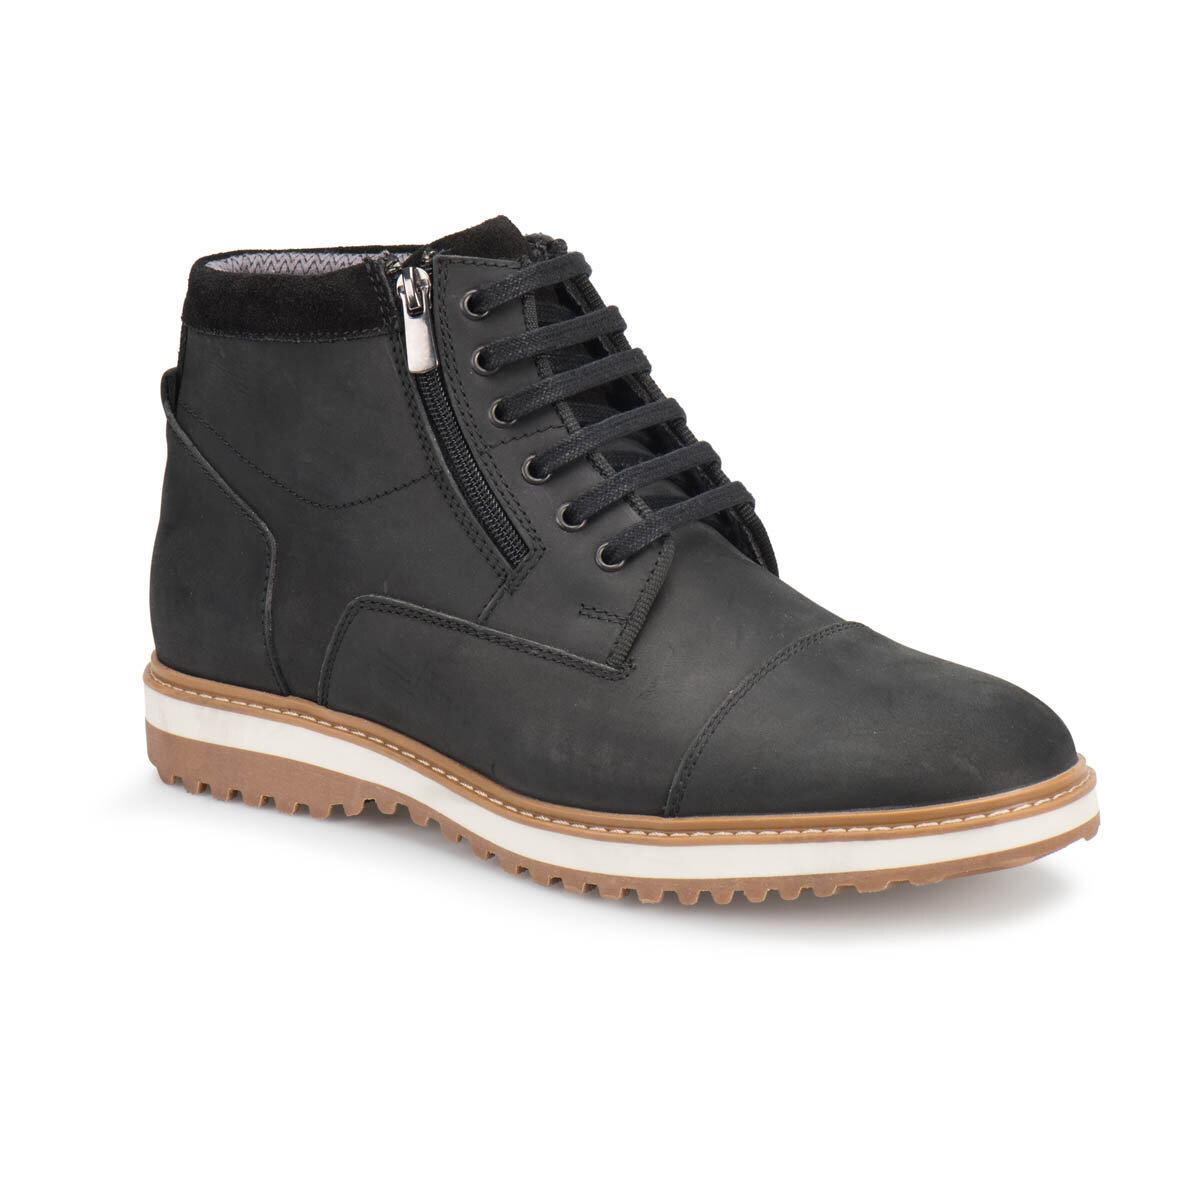 FLO 238 Black Men Boots Forester